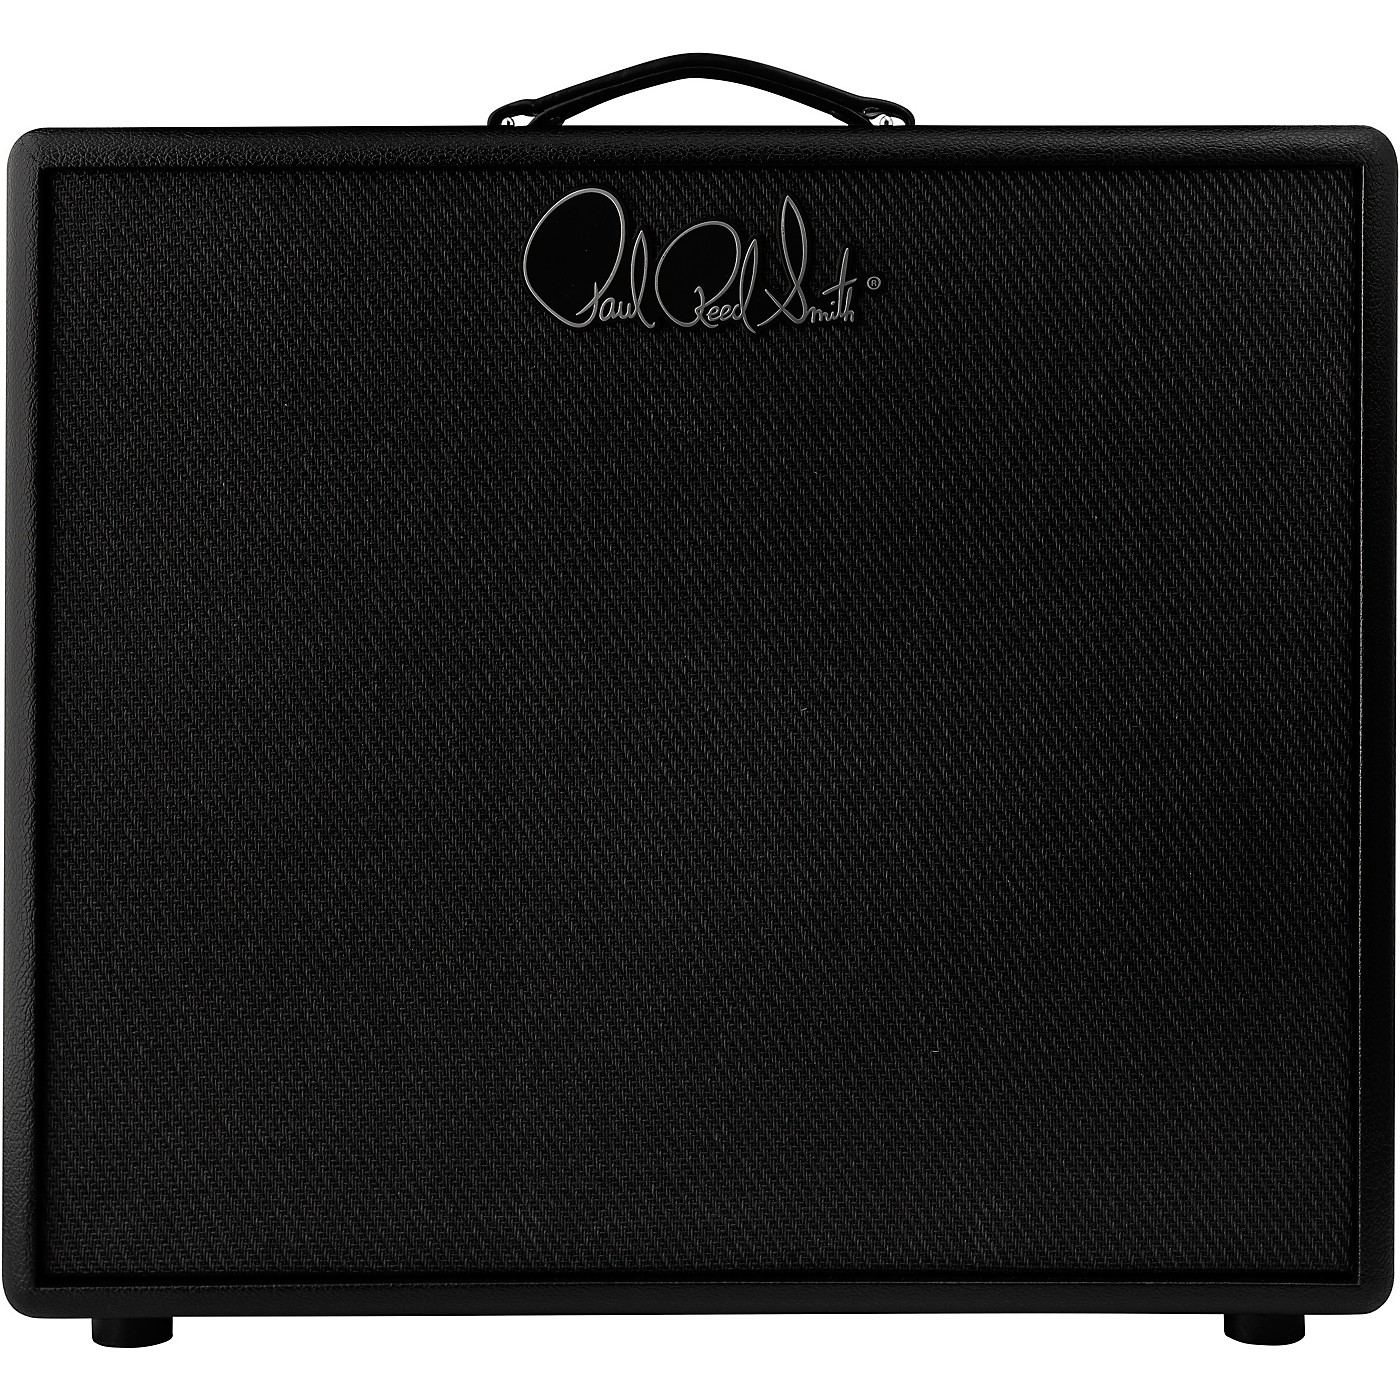 PRS 2x12 Stealth Guitar Cabinet with Celestion V70 Speakers thumbnail